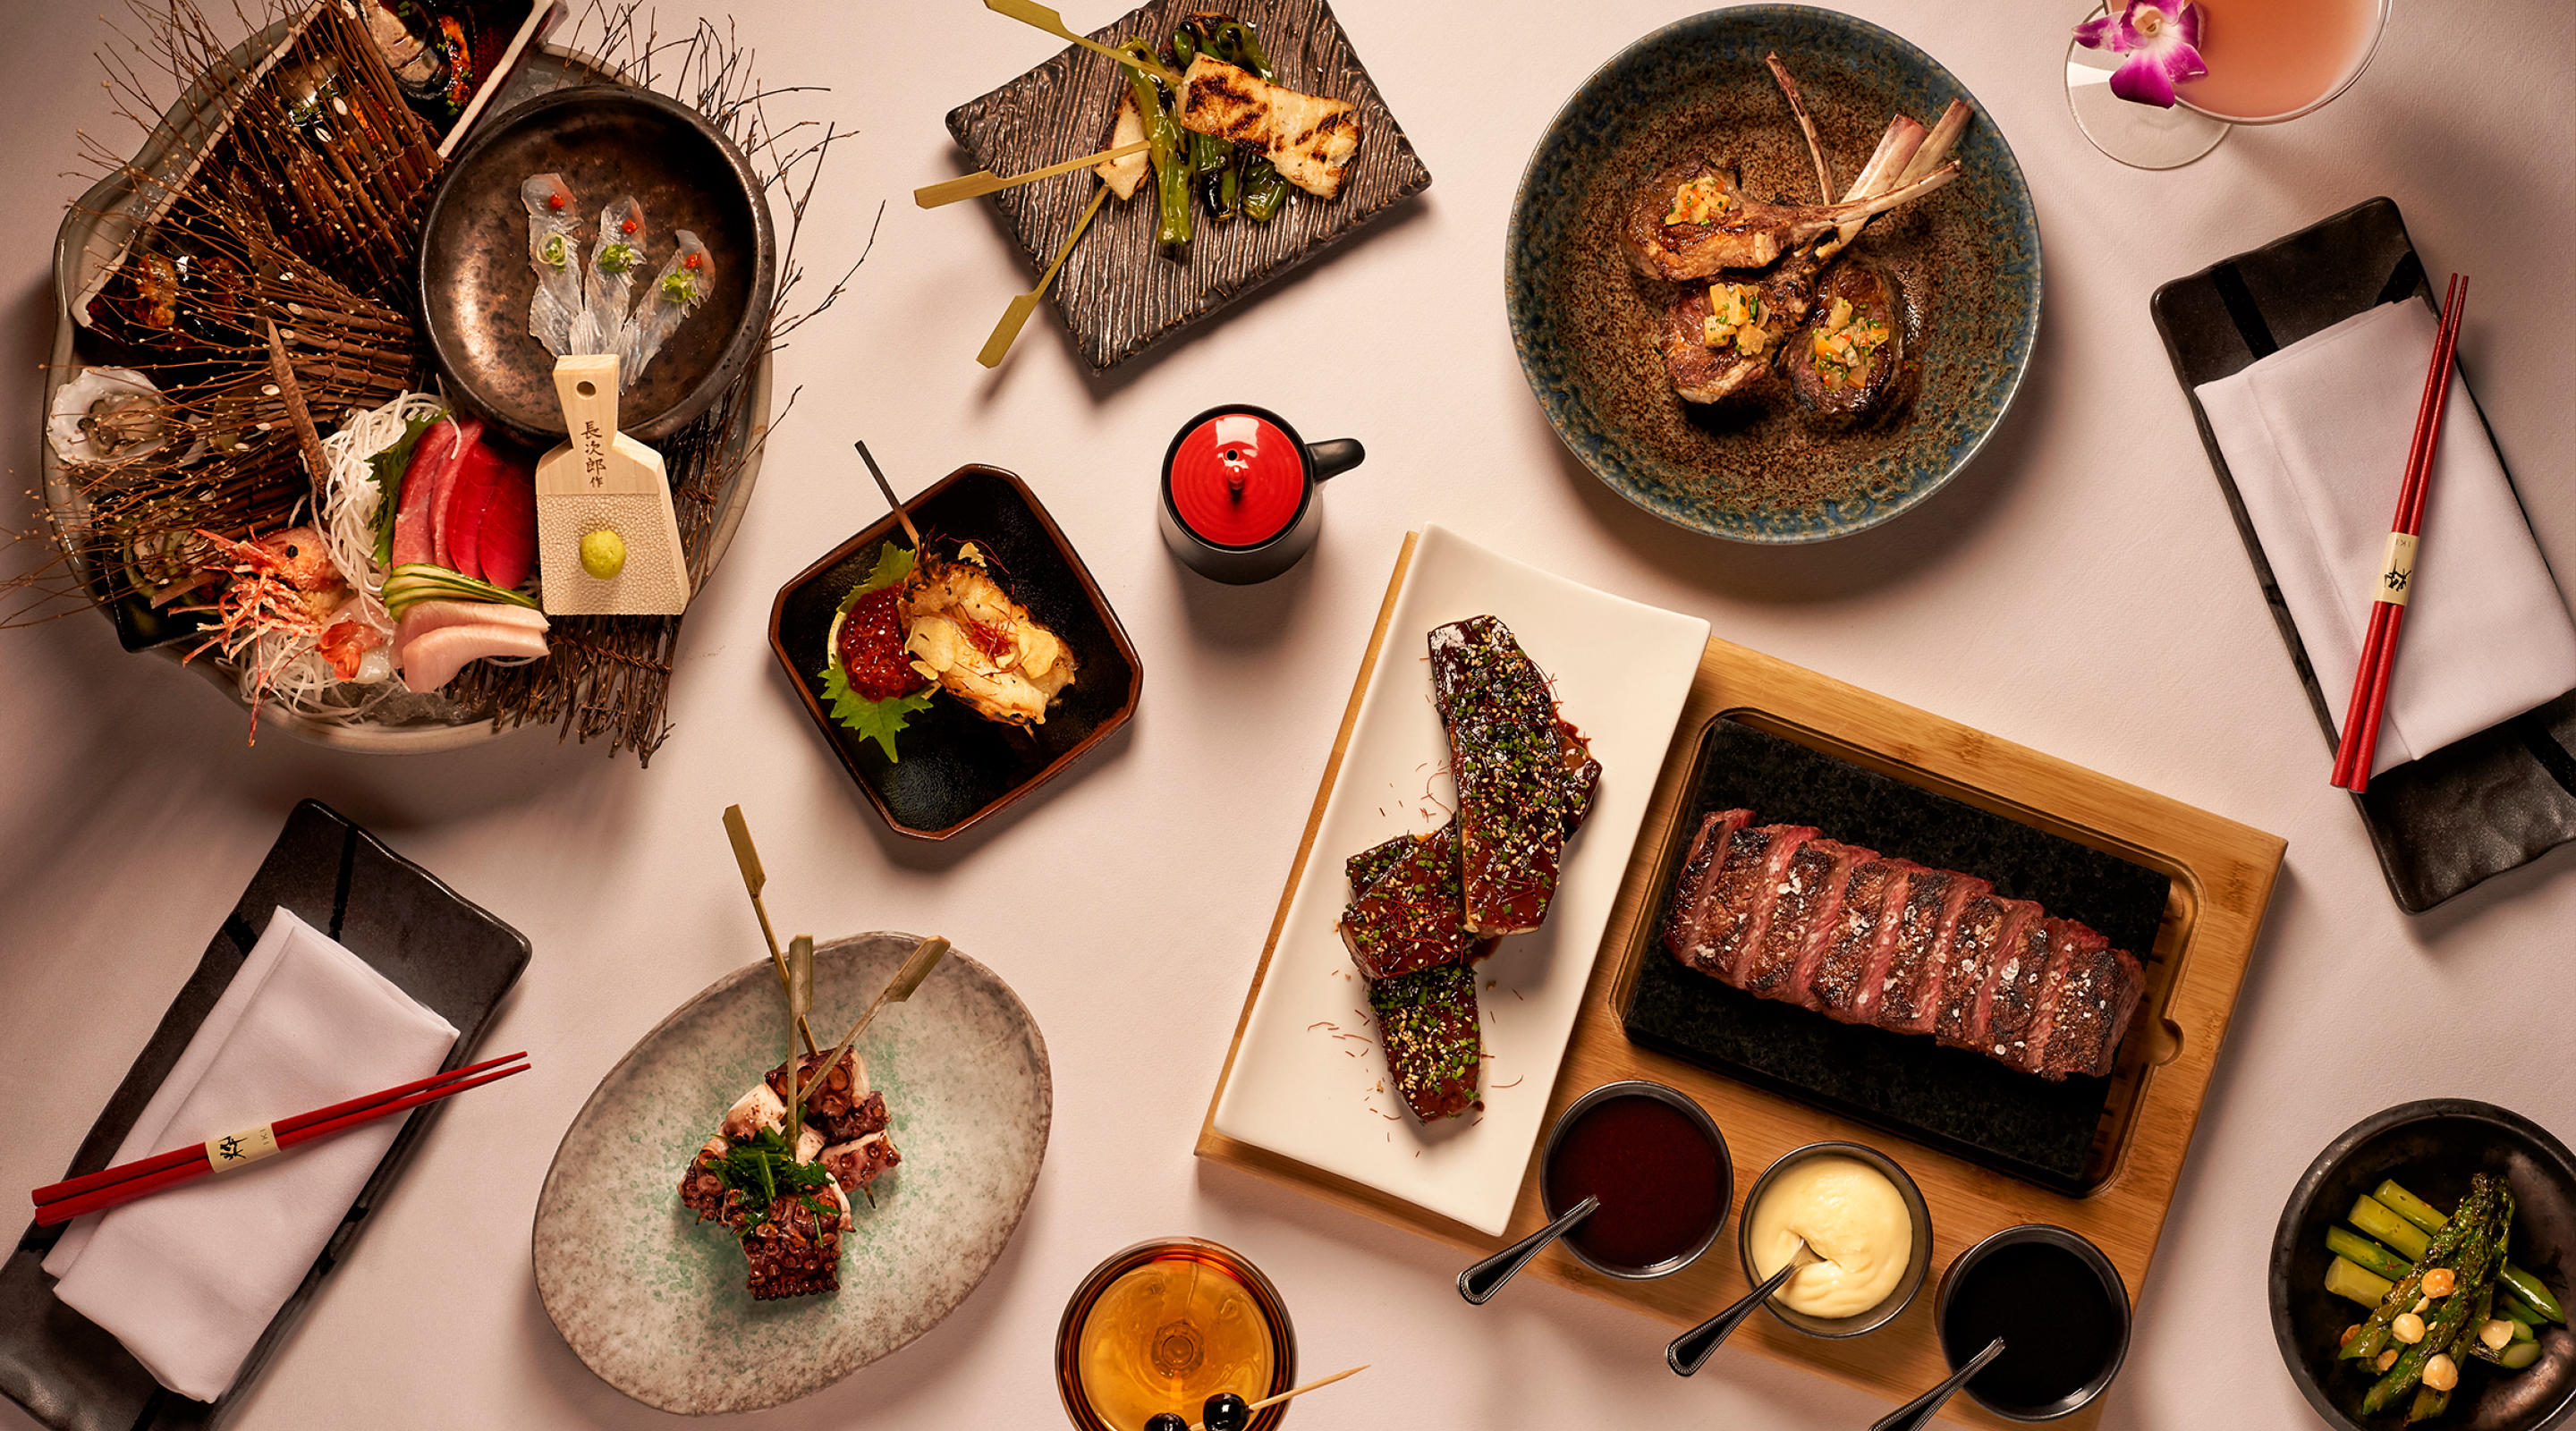 Chef's selection of dishes at OTORO.